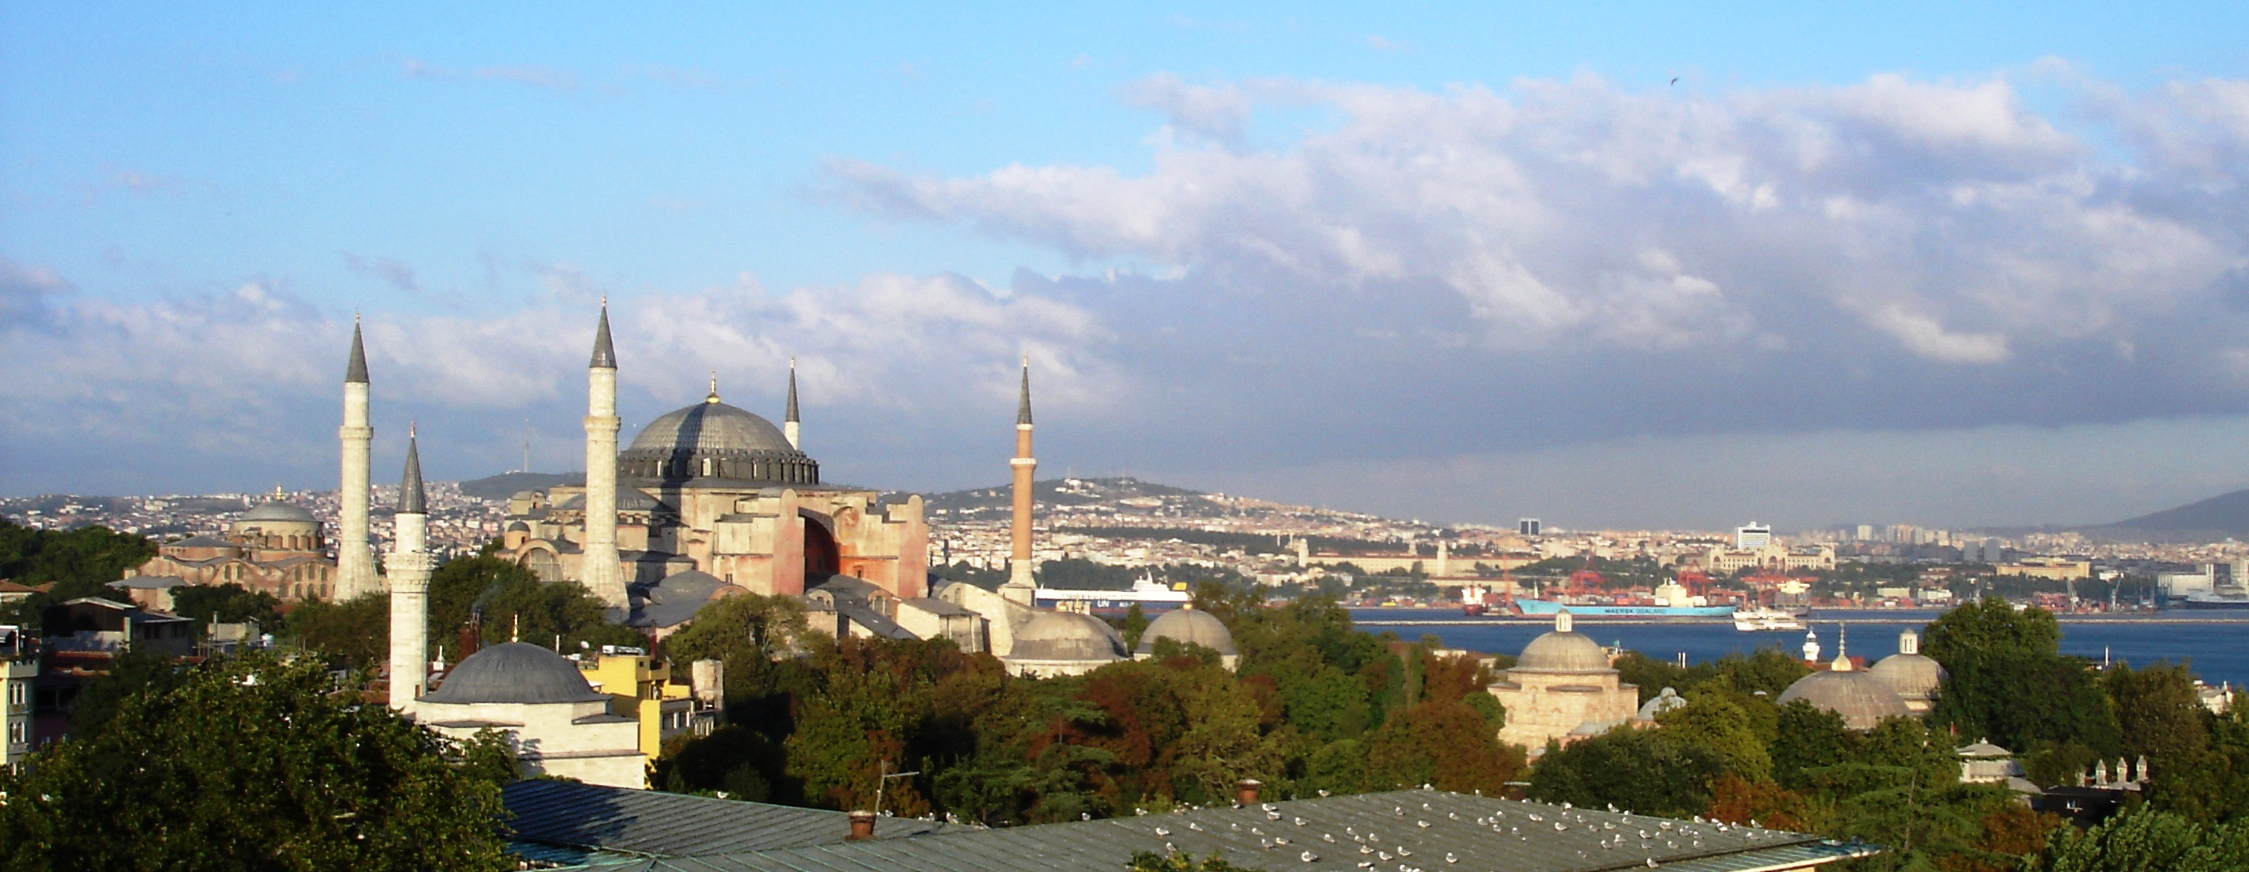 Visiting the Hagia Sophia — the Cradle of Byzantine Religion